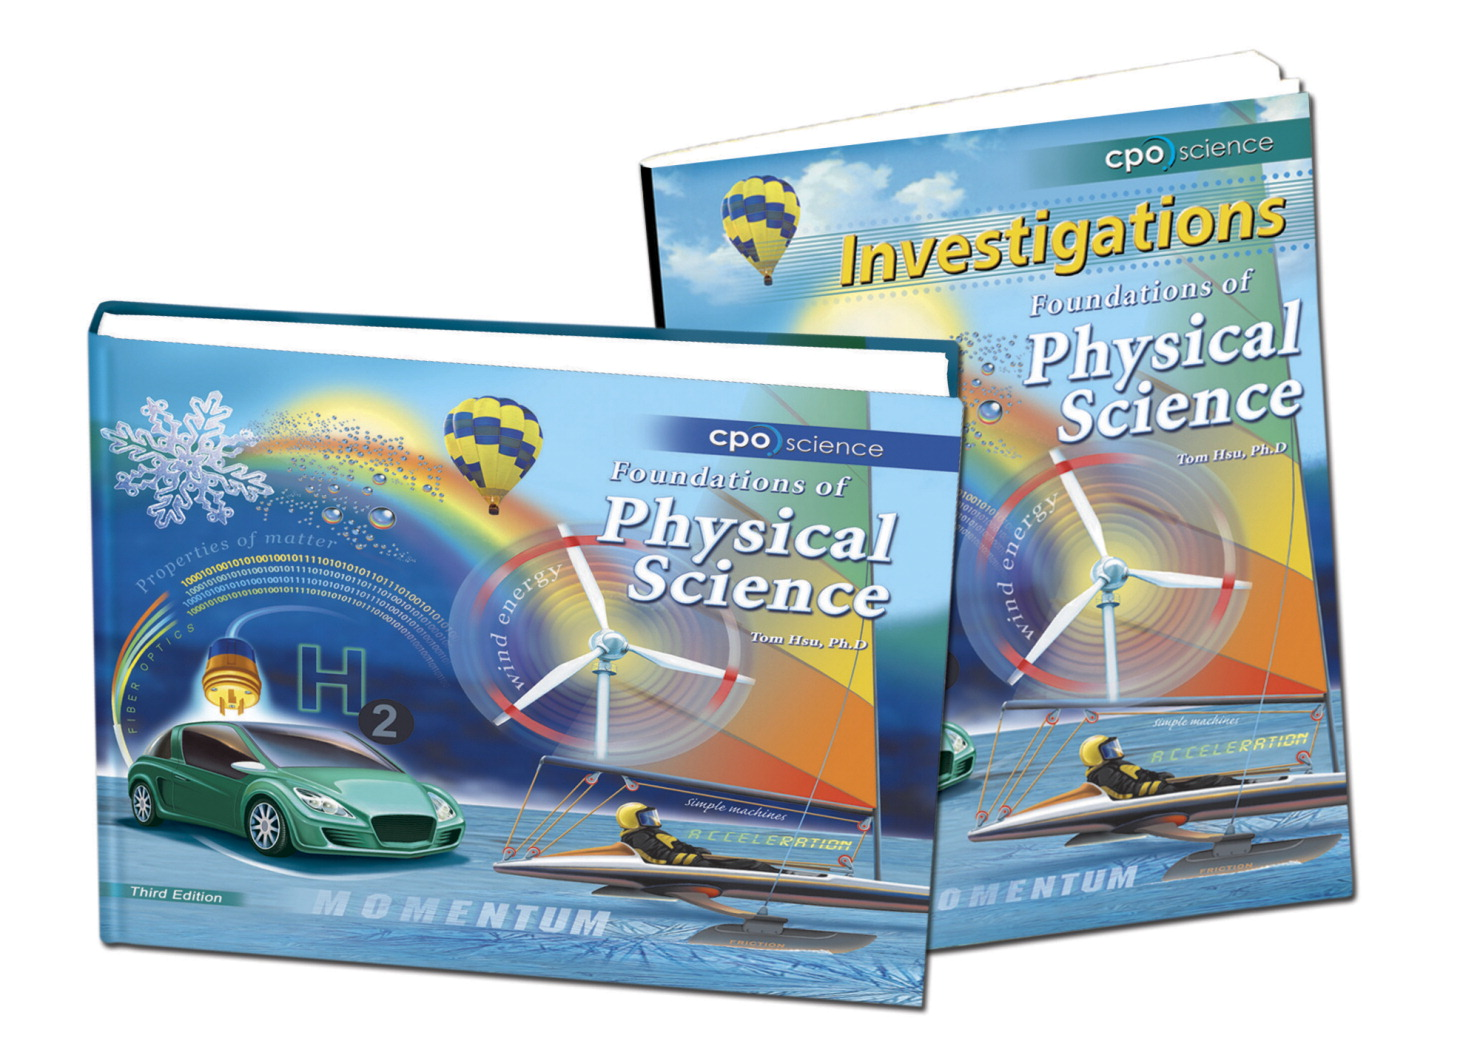 CPO Science Foundations of Physical Science 3rd Edition Student Book Set